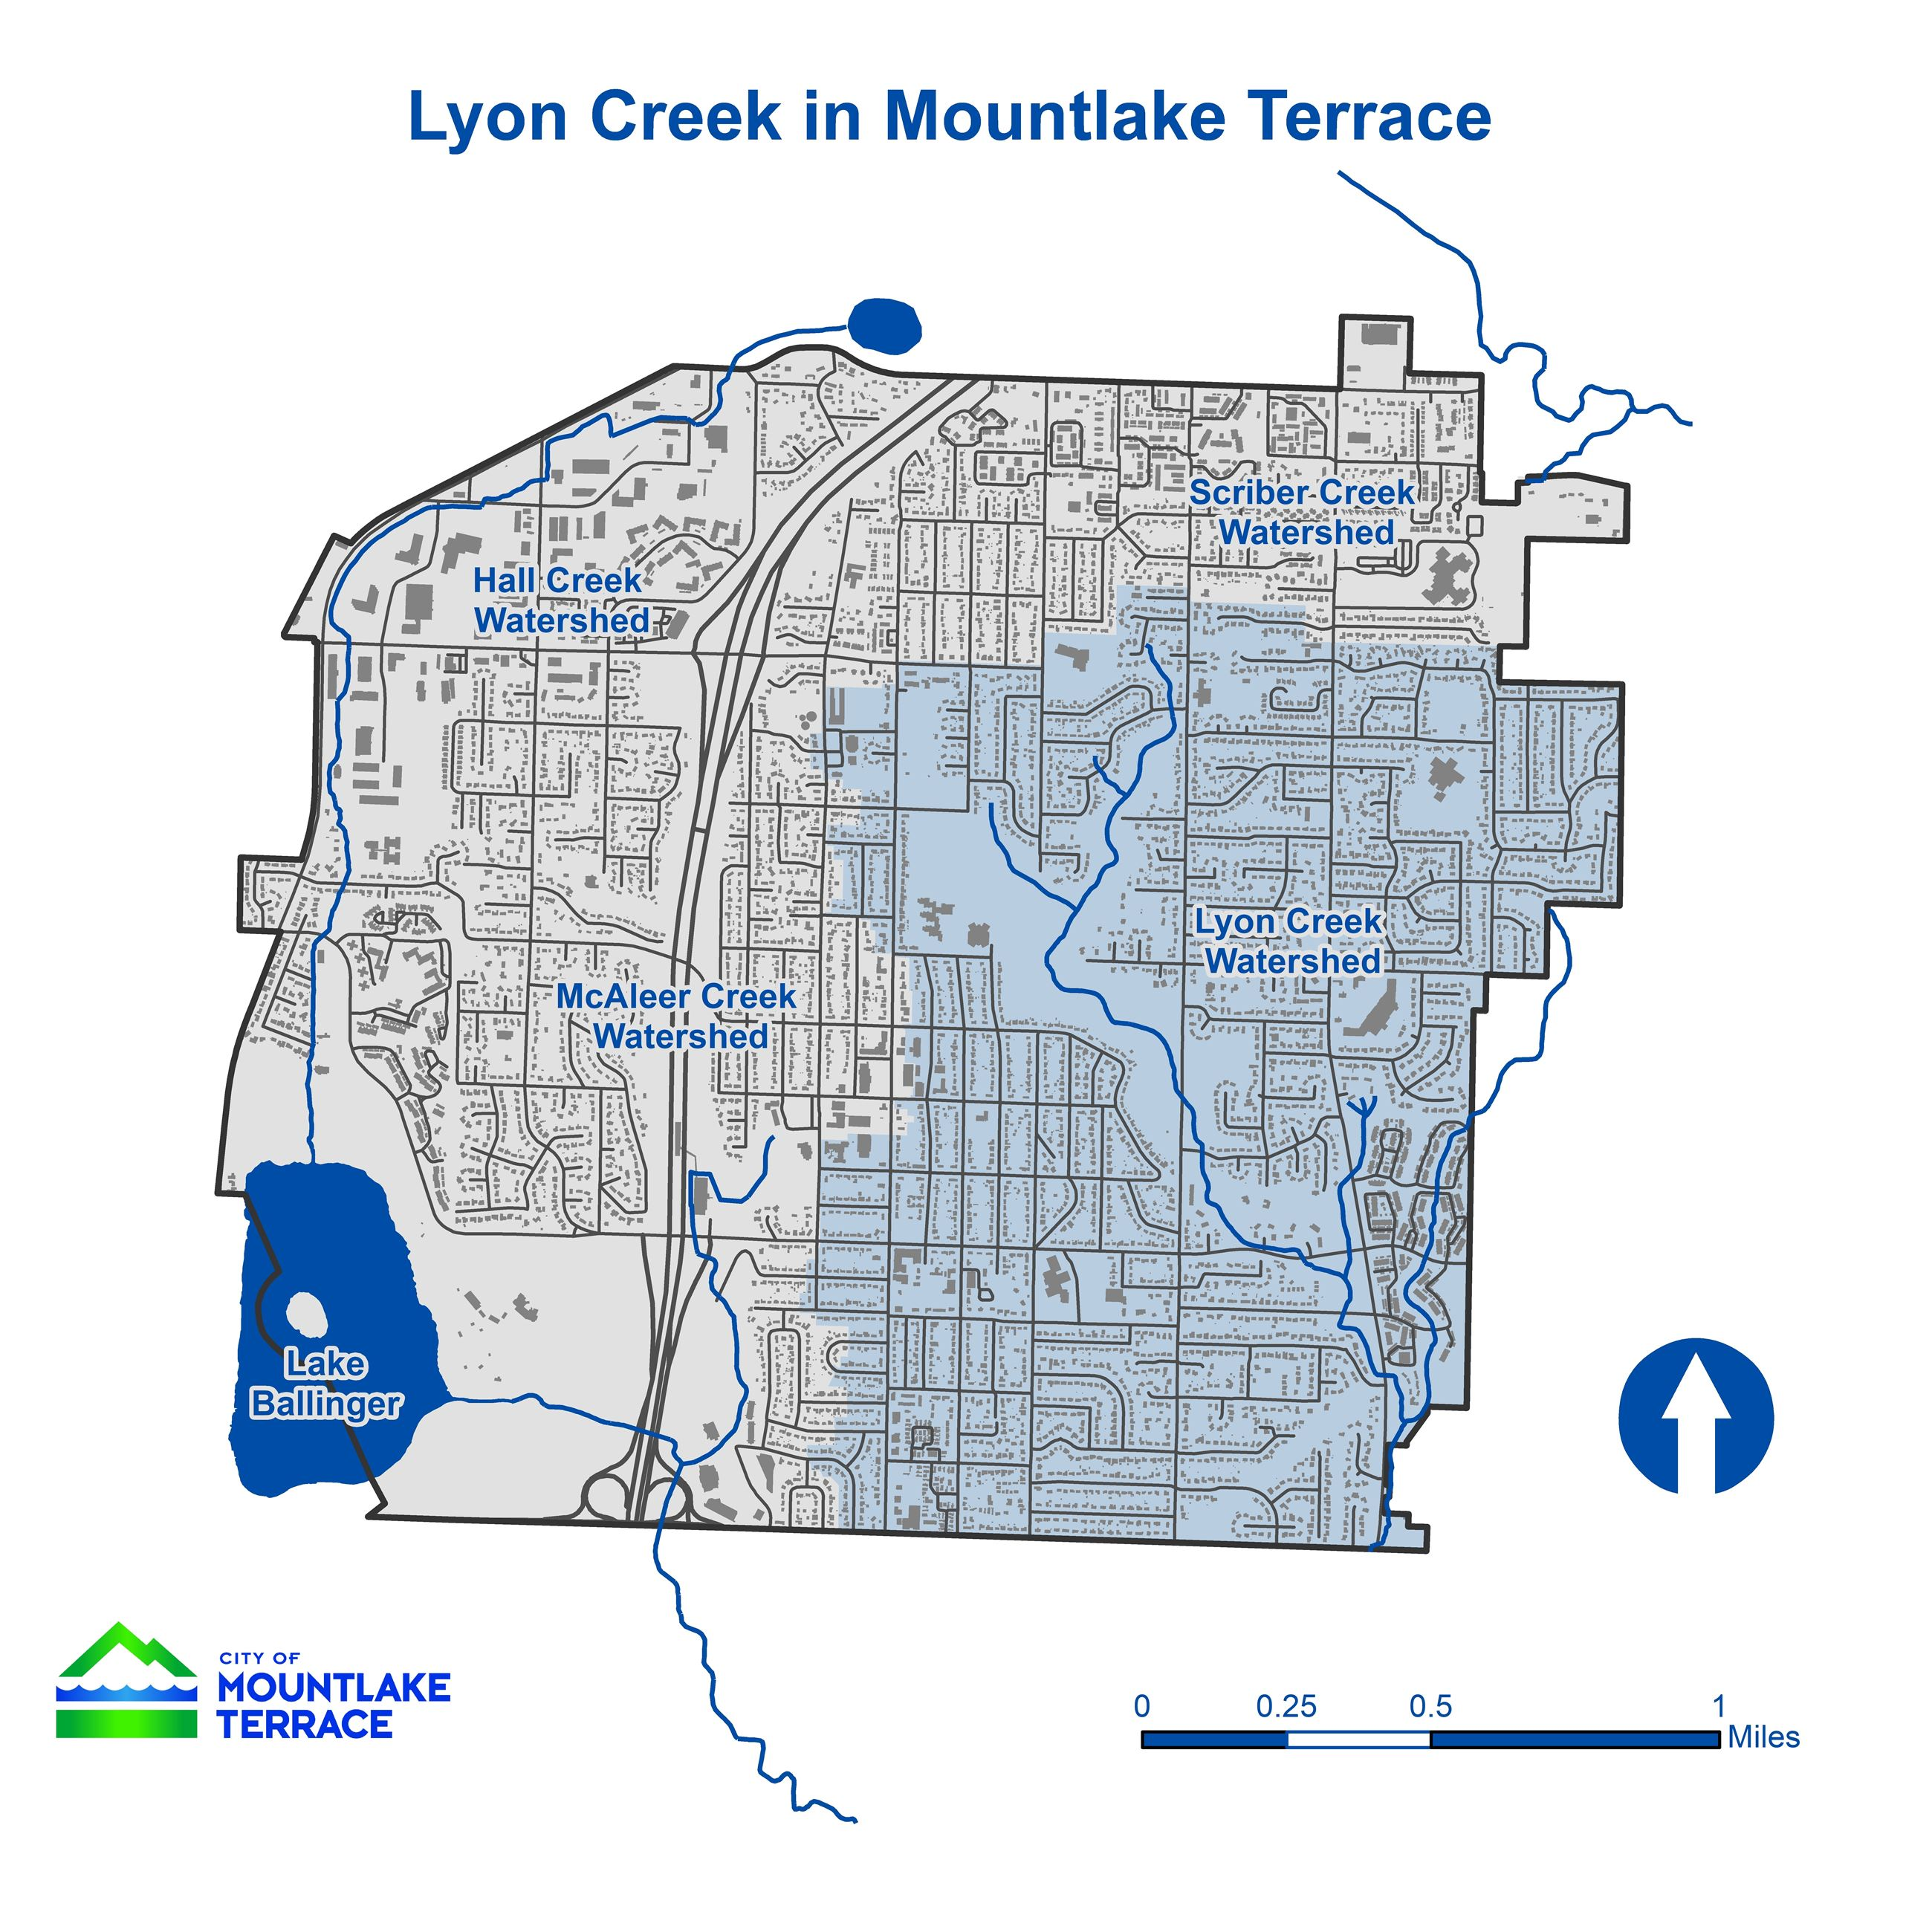 Lyon Creek Watershed